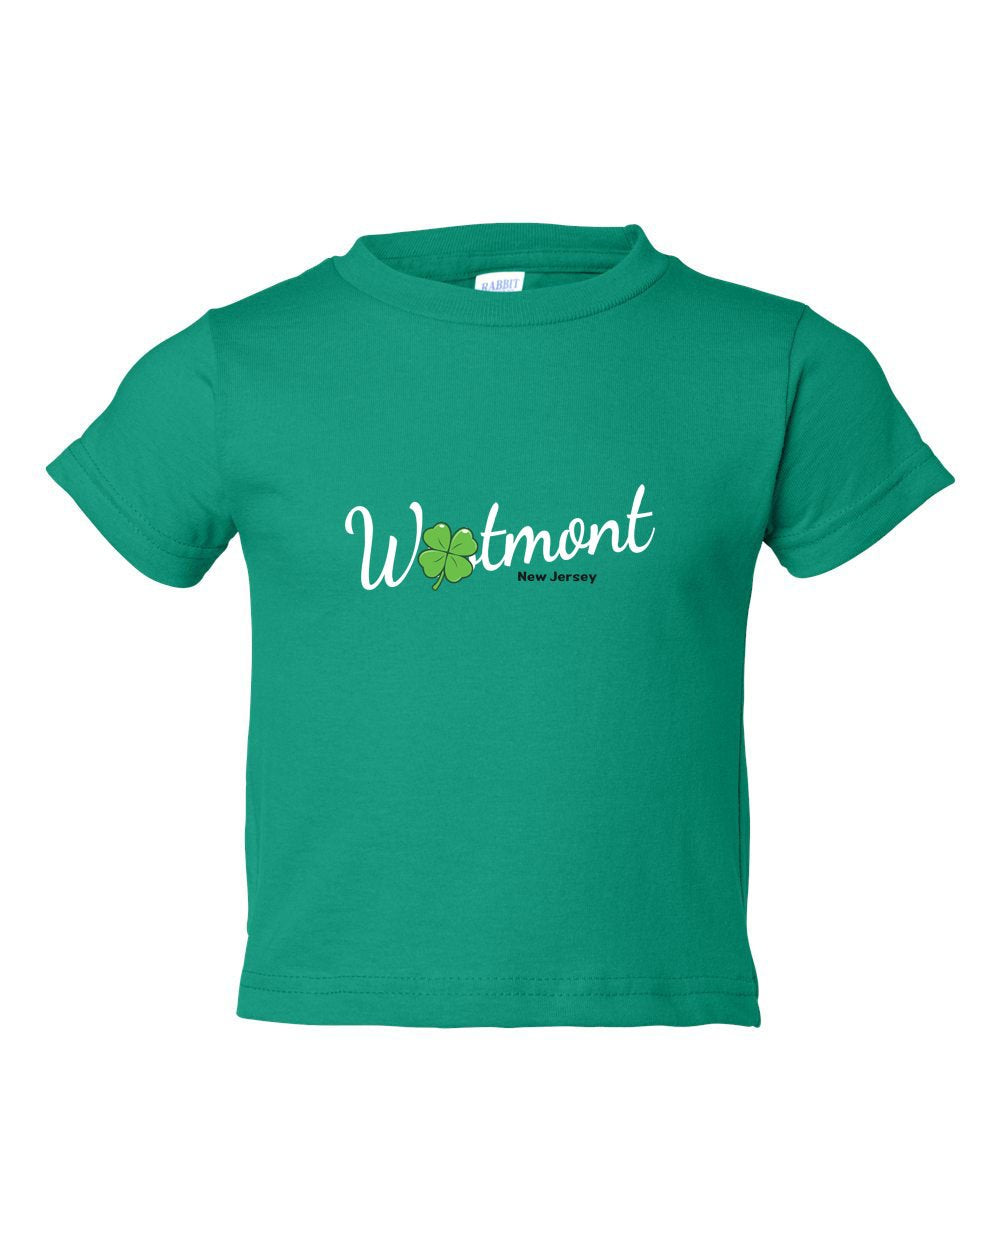 Irish Westmont TODDLER T-Shirt